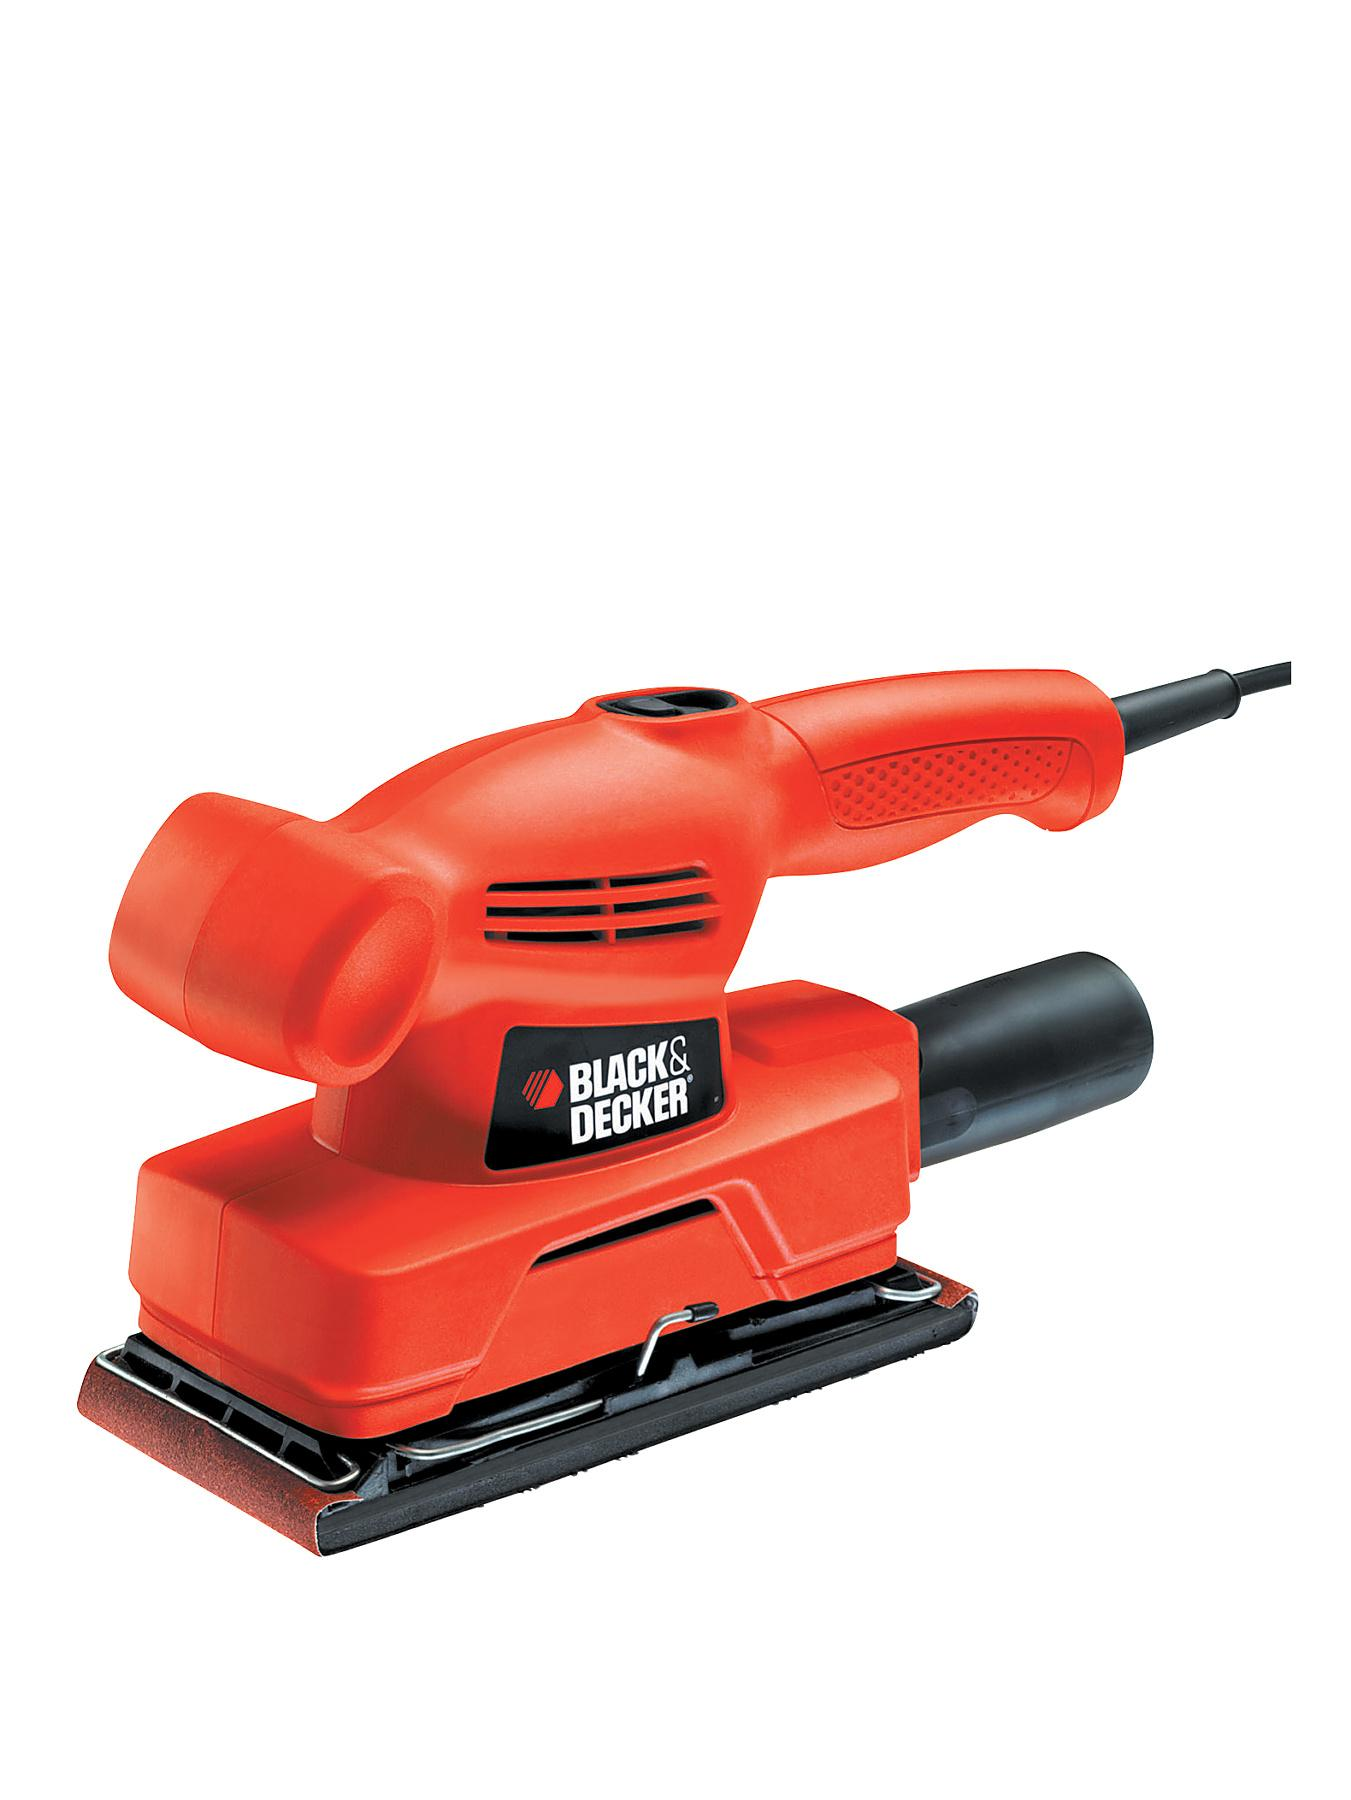 Black & Decker KA300Gb 135-watt 1/3rd Sheet Sander